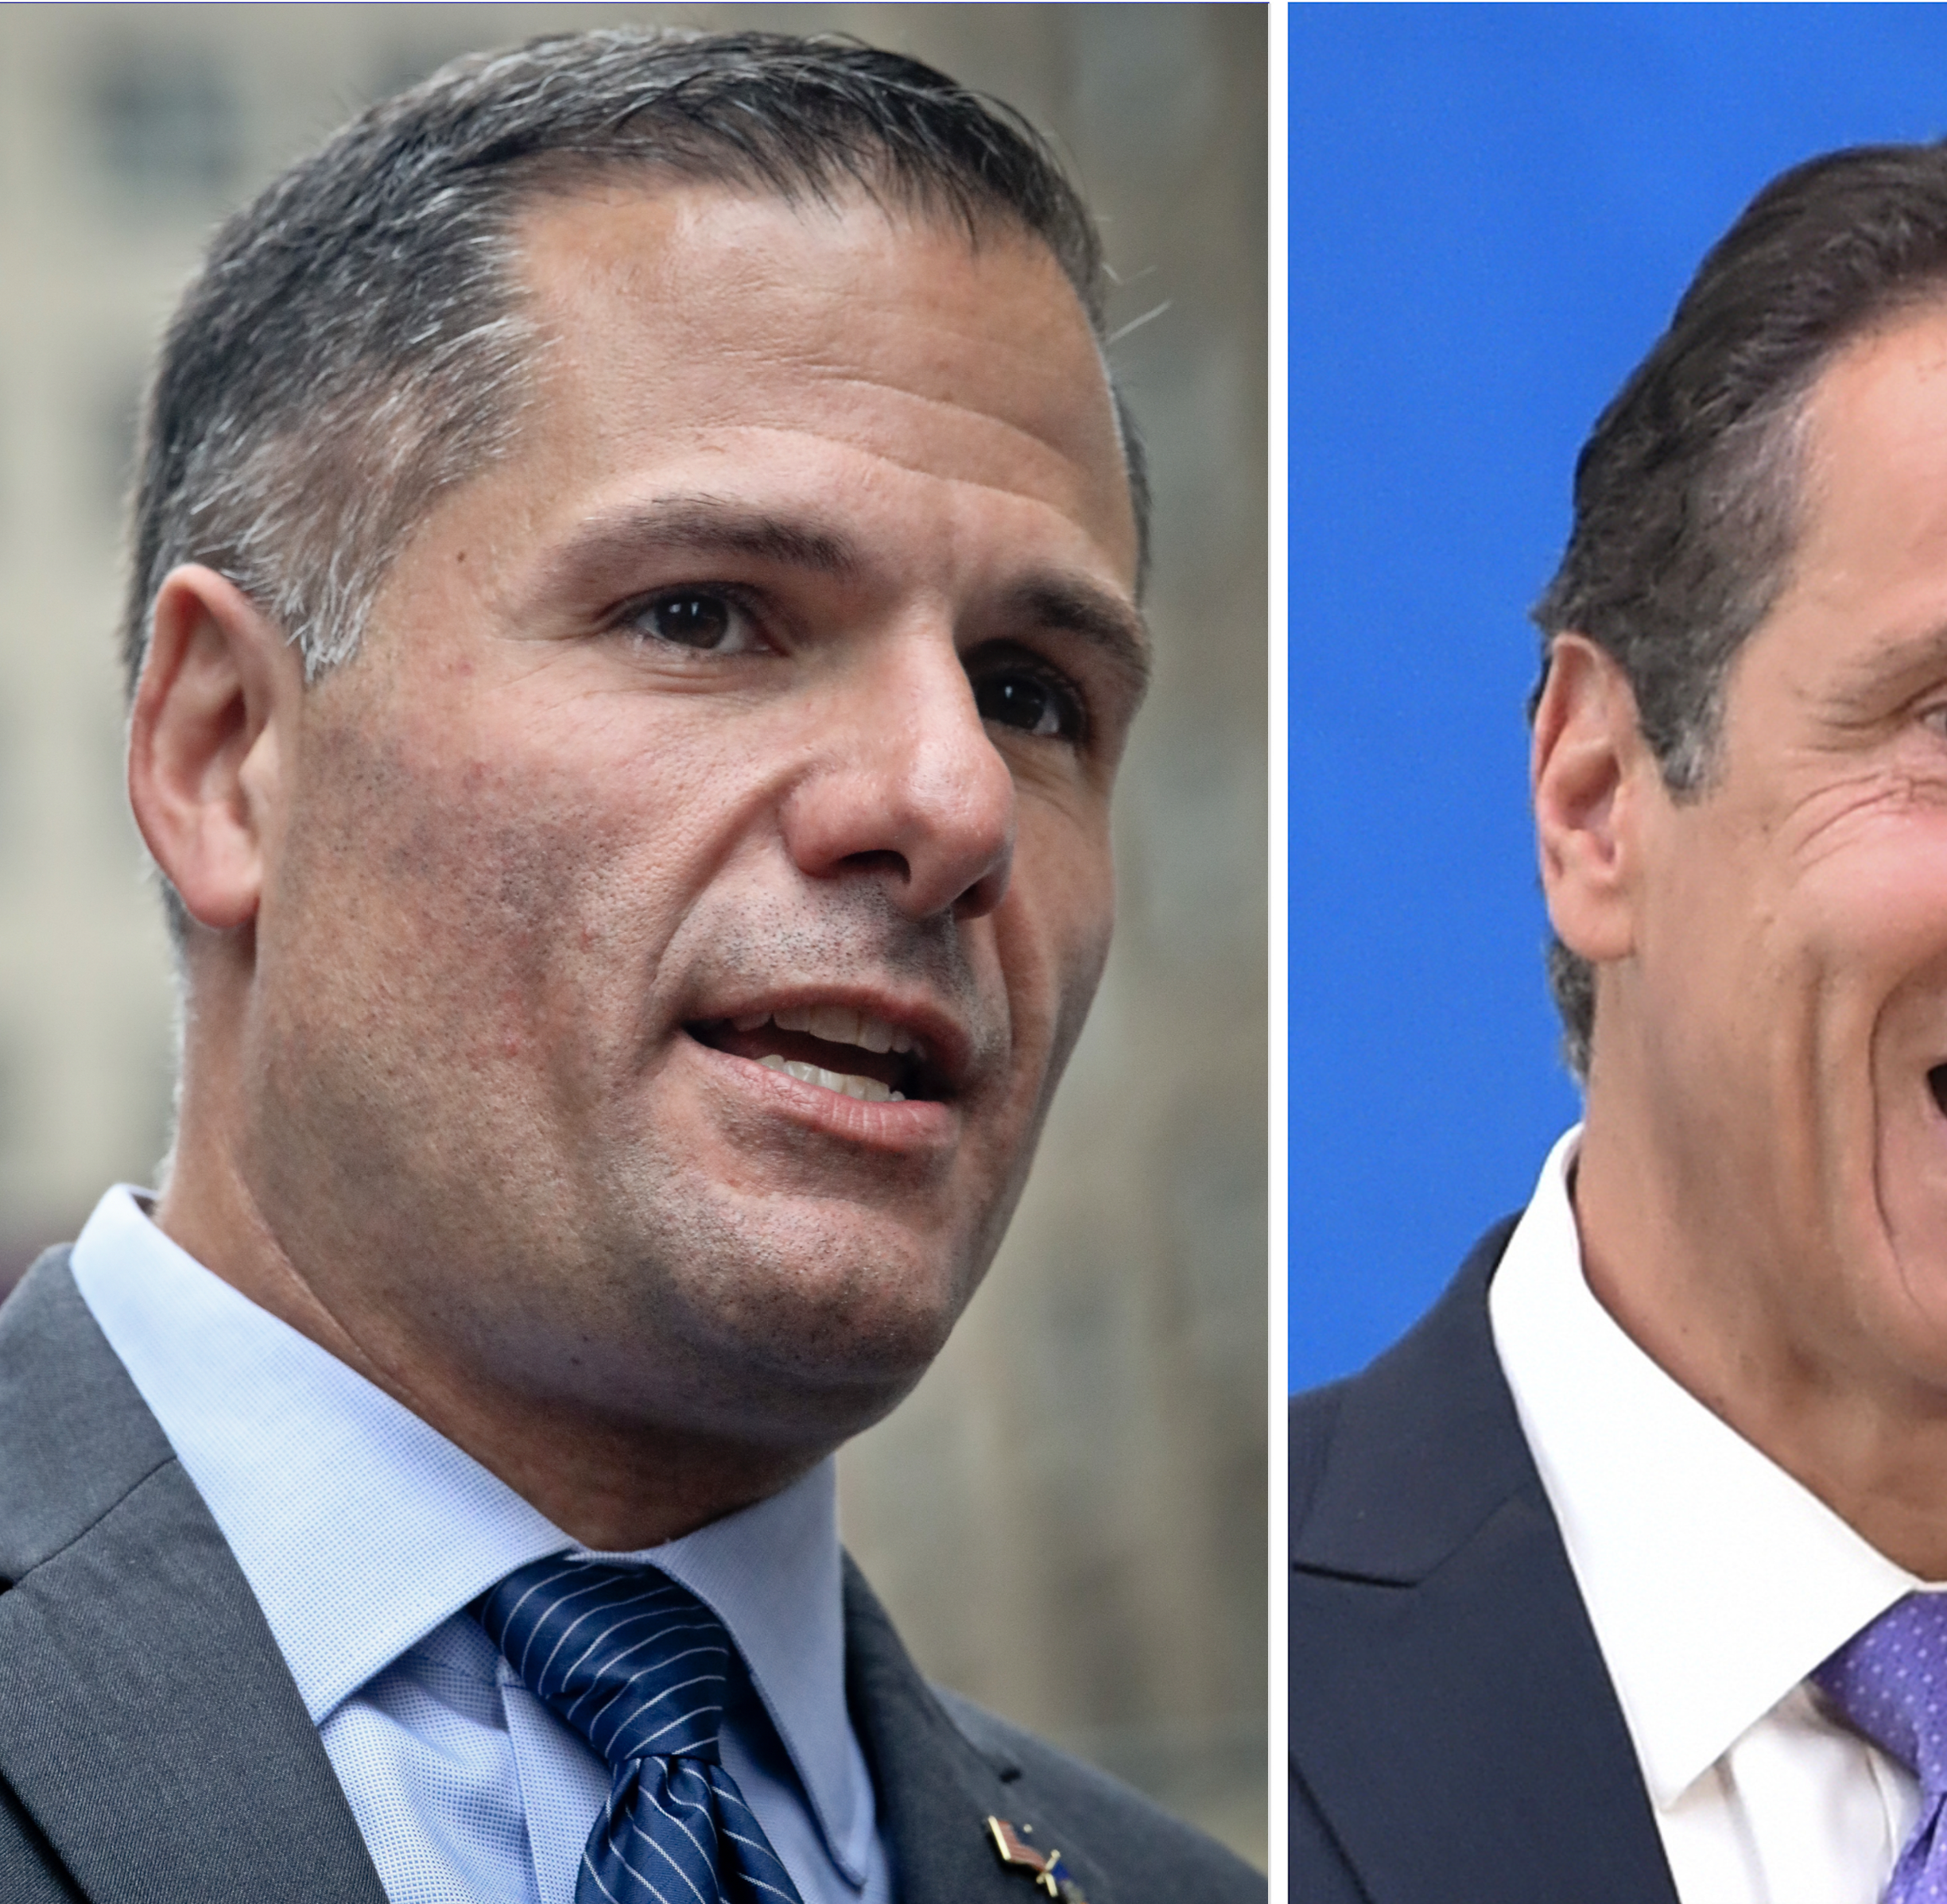 Yes, there will be a debate for governor between Molinaro and Cuomo